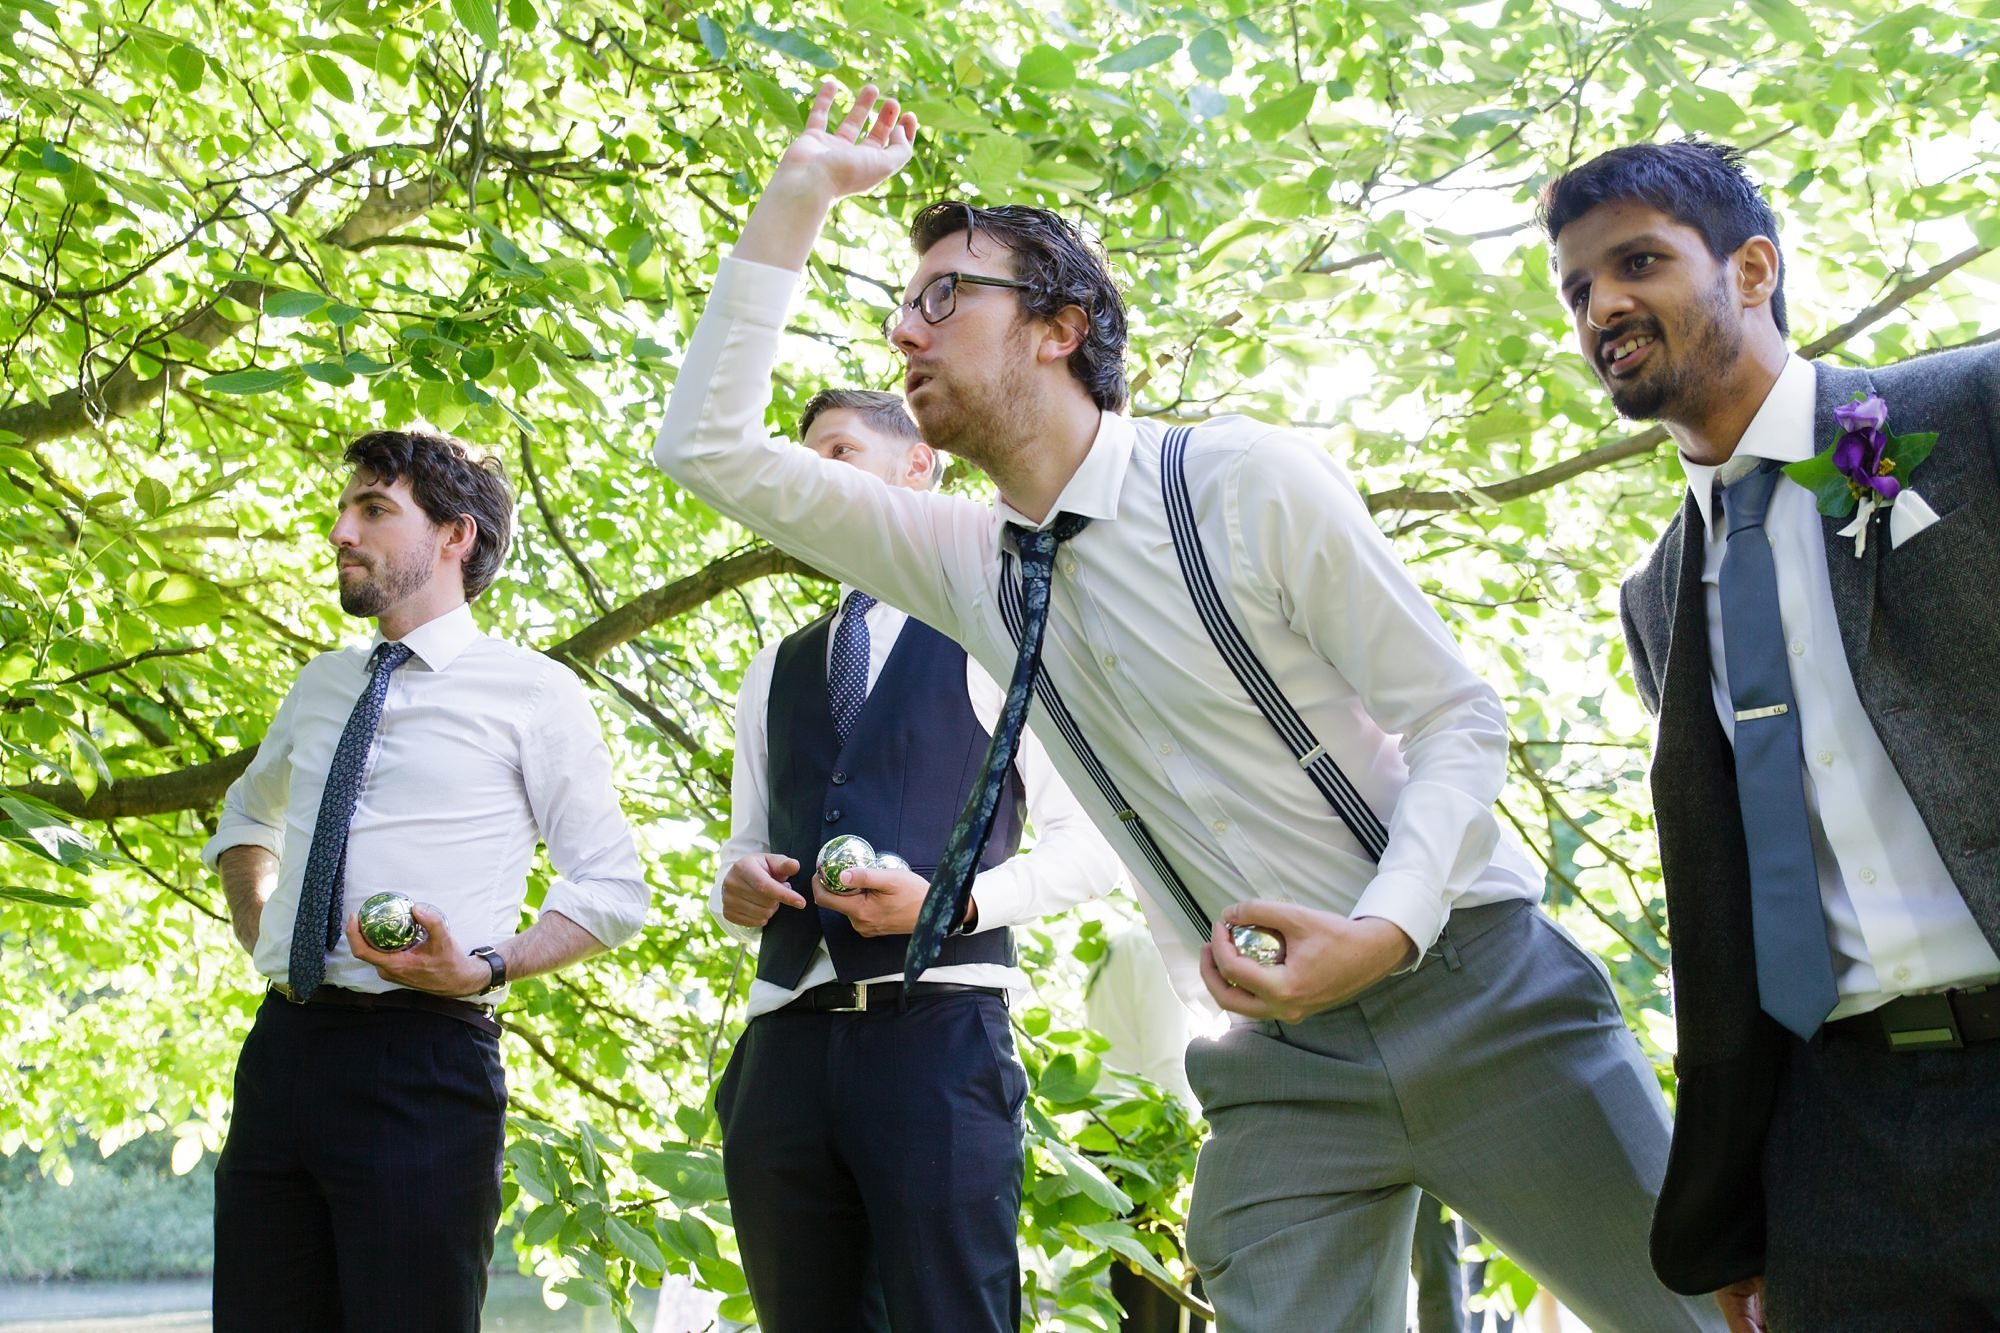 Guests play lawn games at wedding at East Riddlesden Hall